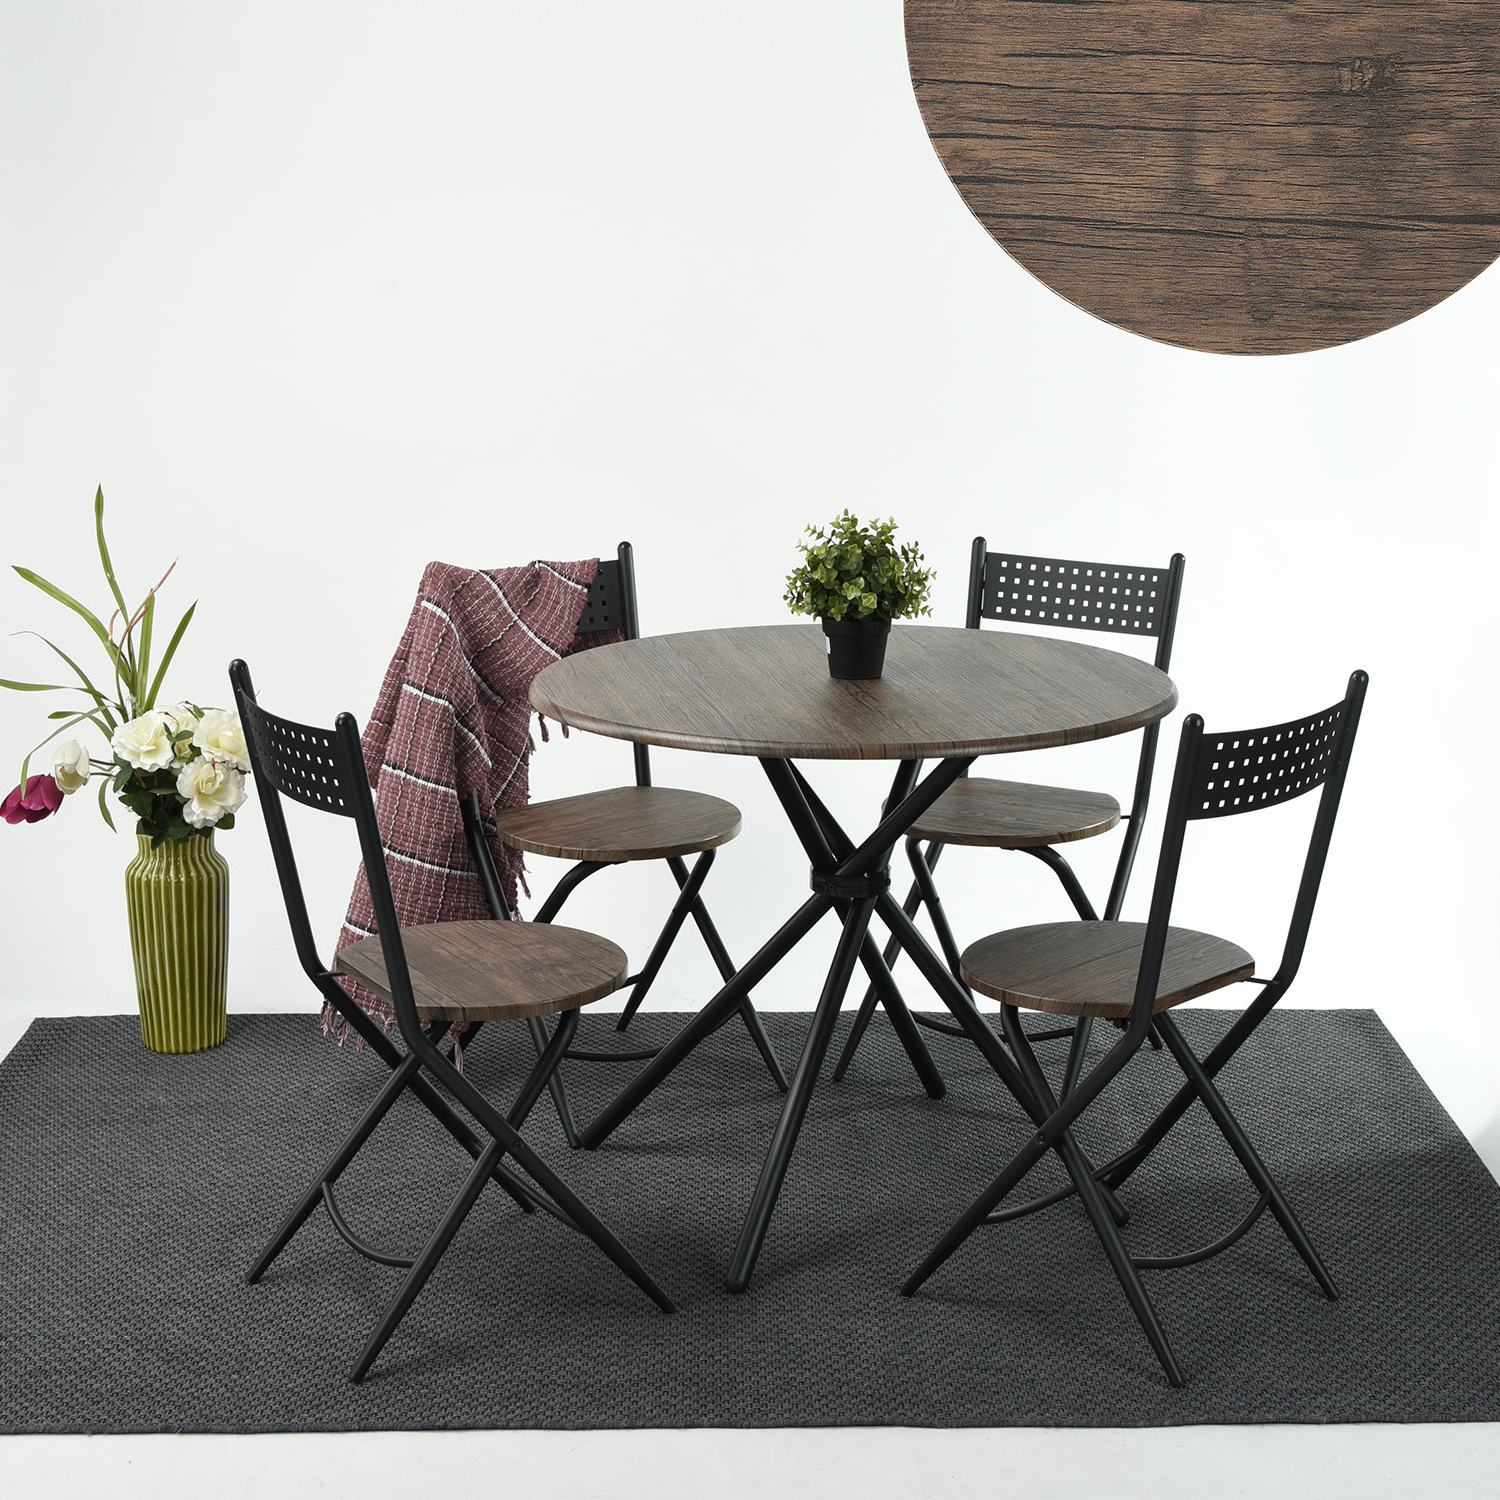 Preferred Kaelin 5 Piece Dining Sets In Wrought Studio Burdett 5 Piece Dining Set (View 17 of 20)